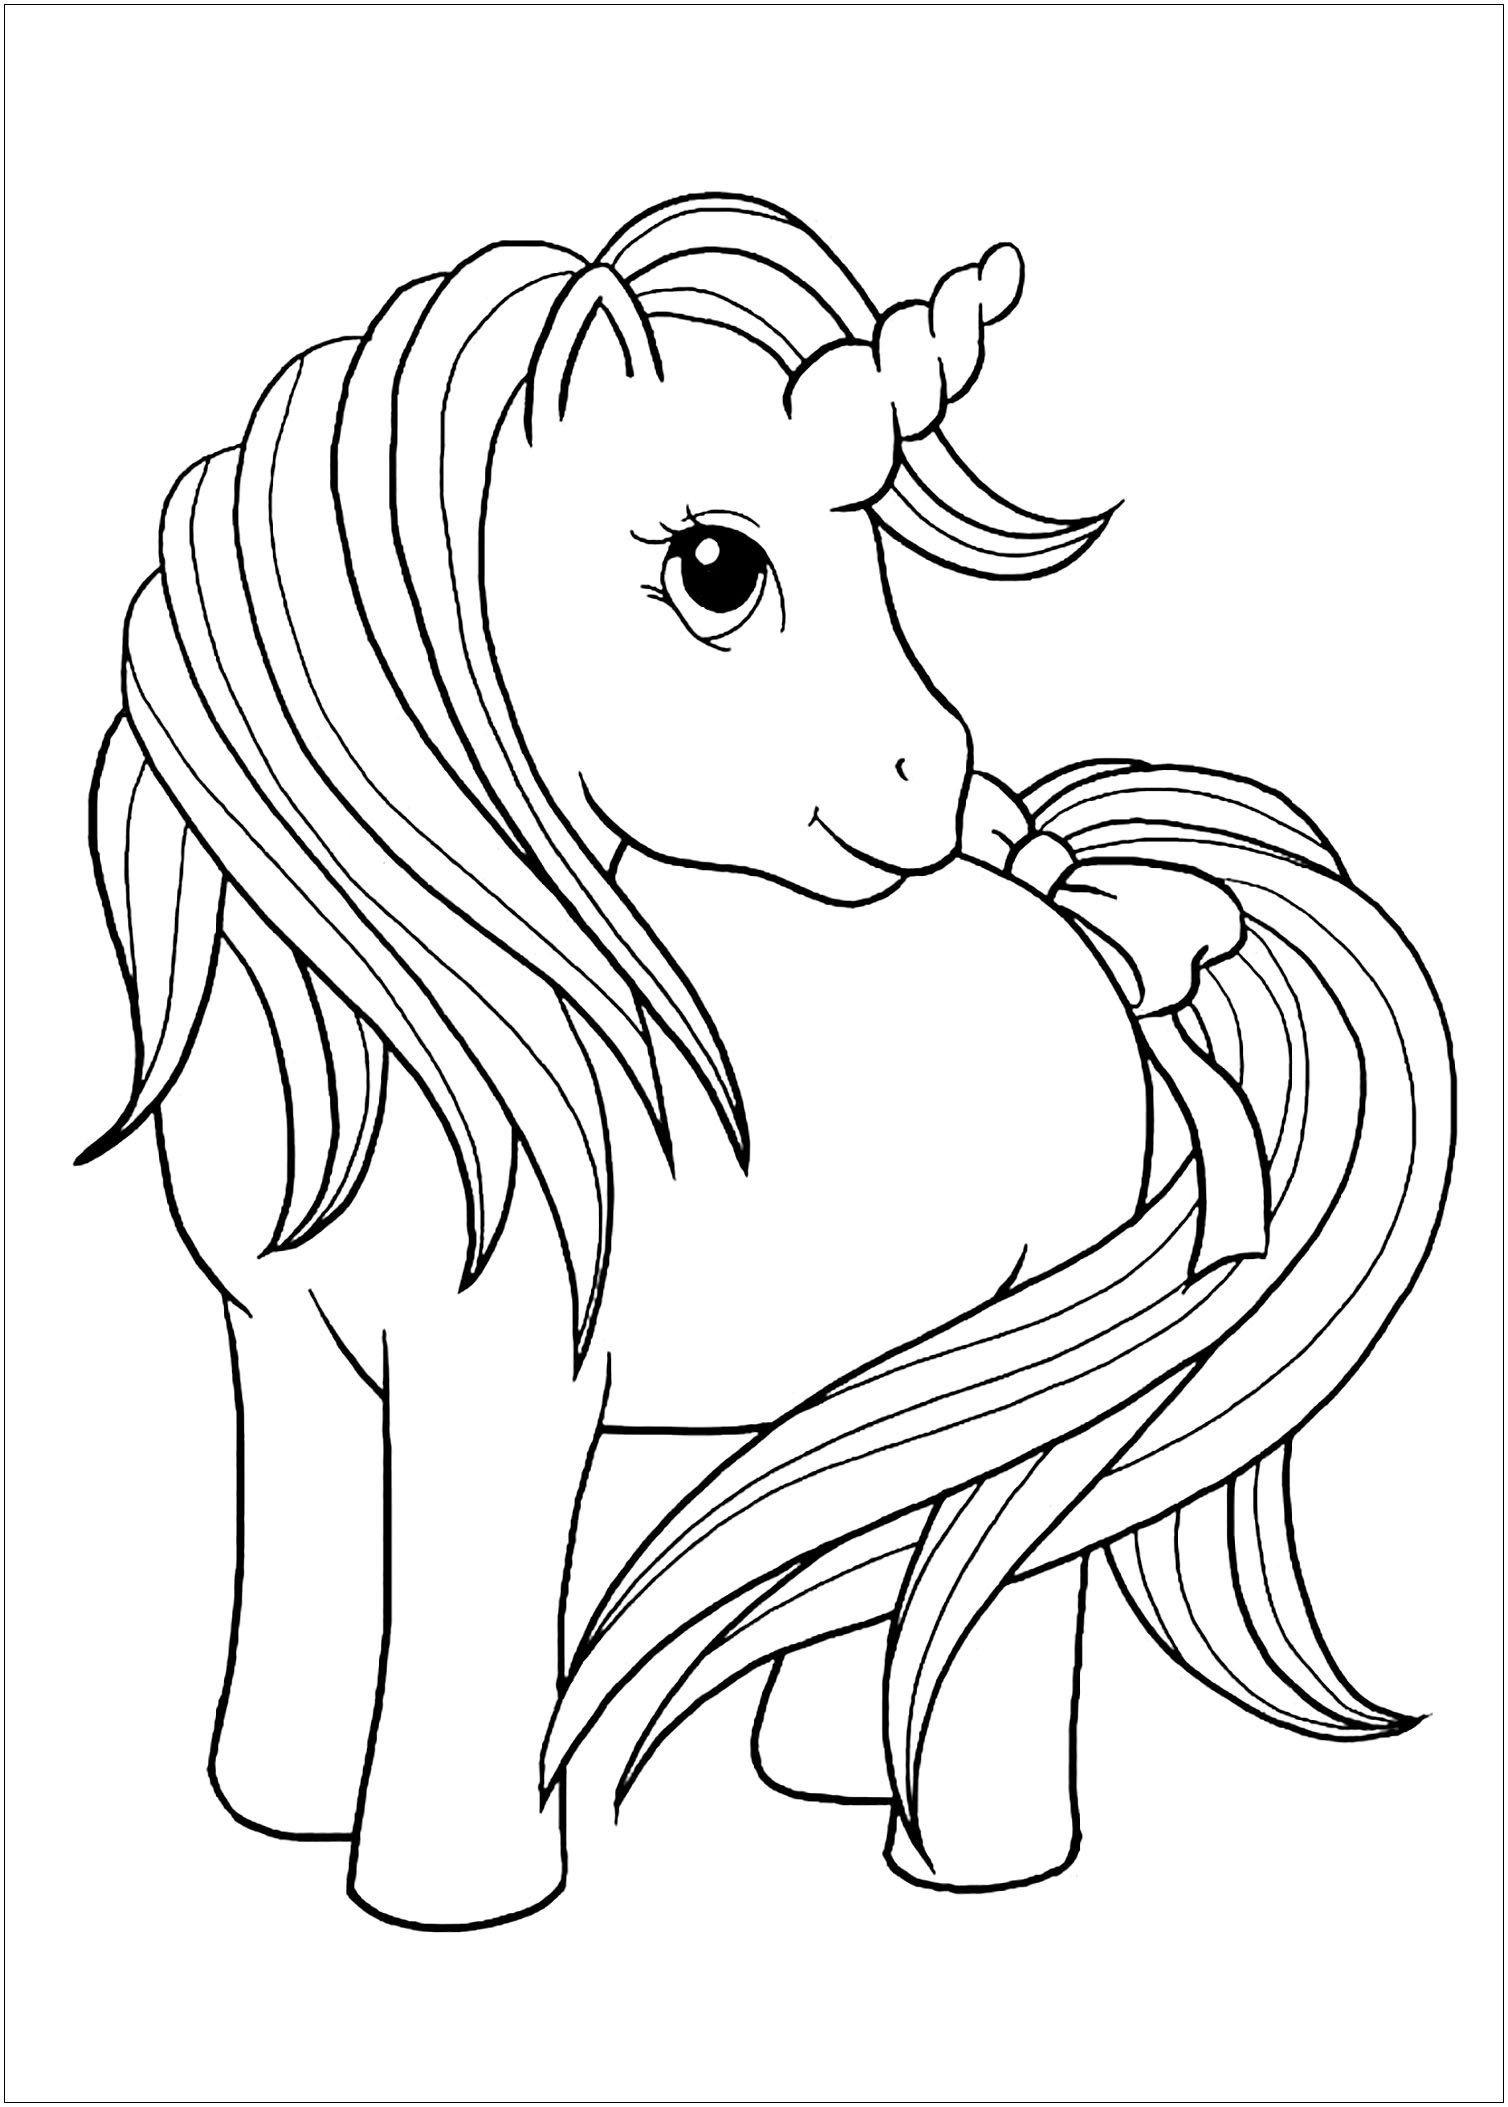 Anime Animals Coloring Pages Coloring Pages Unicorns Free To Color For Children Kids Horse Coloring Pages Animal Coloring Pages Unicorn Coloring Pages